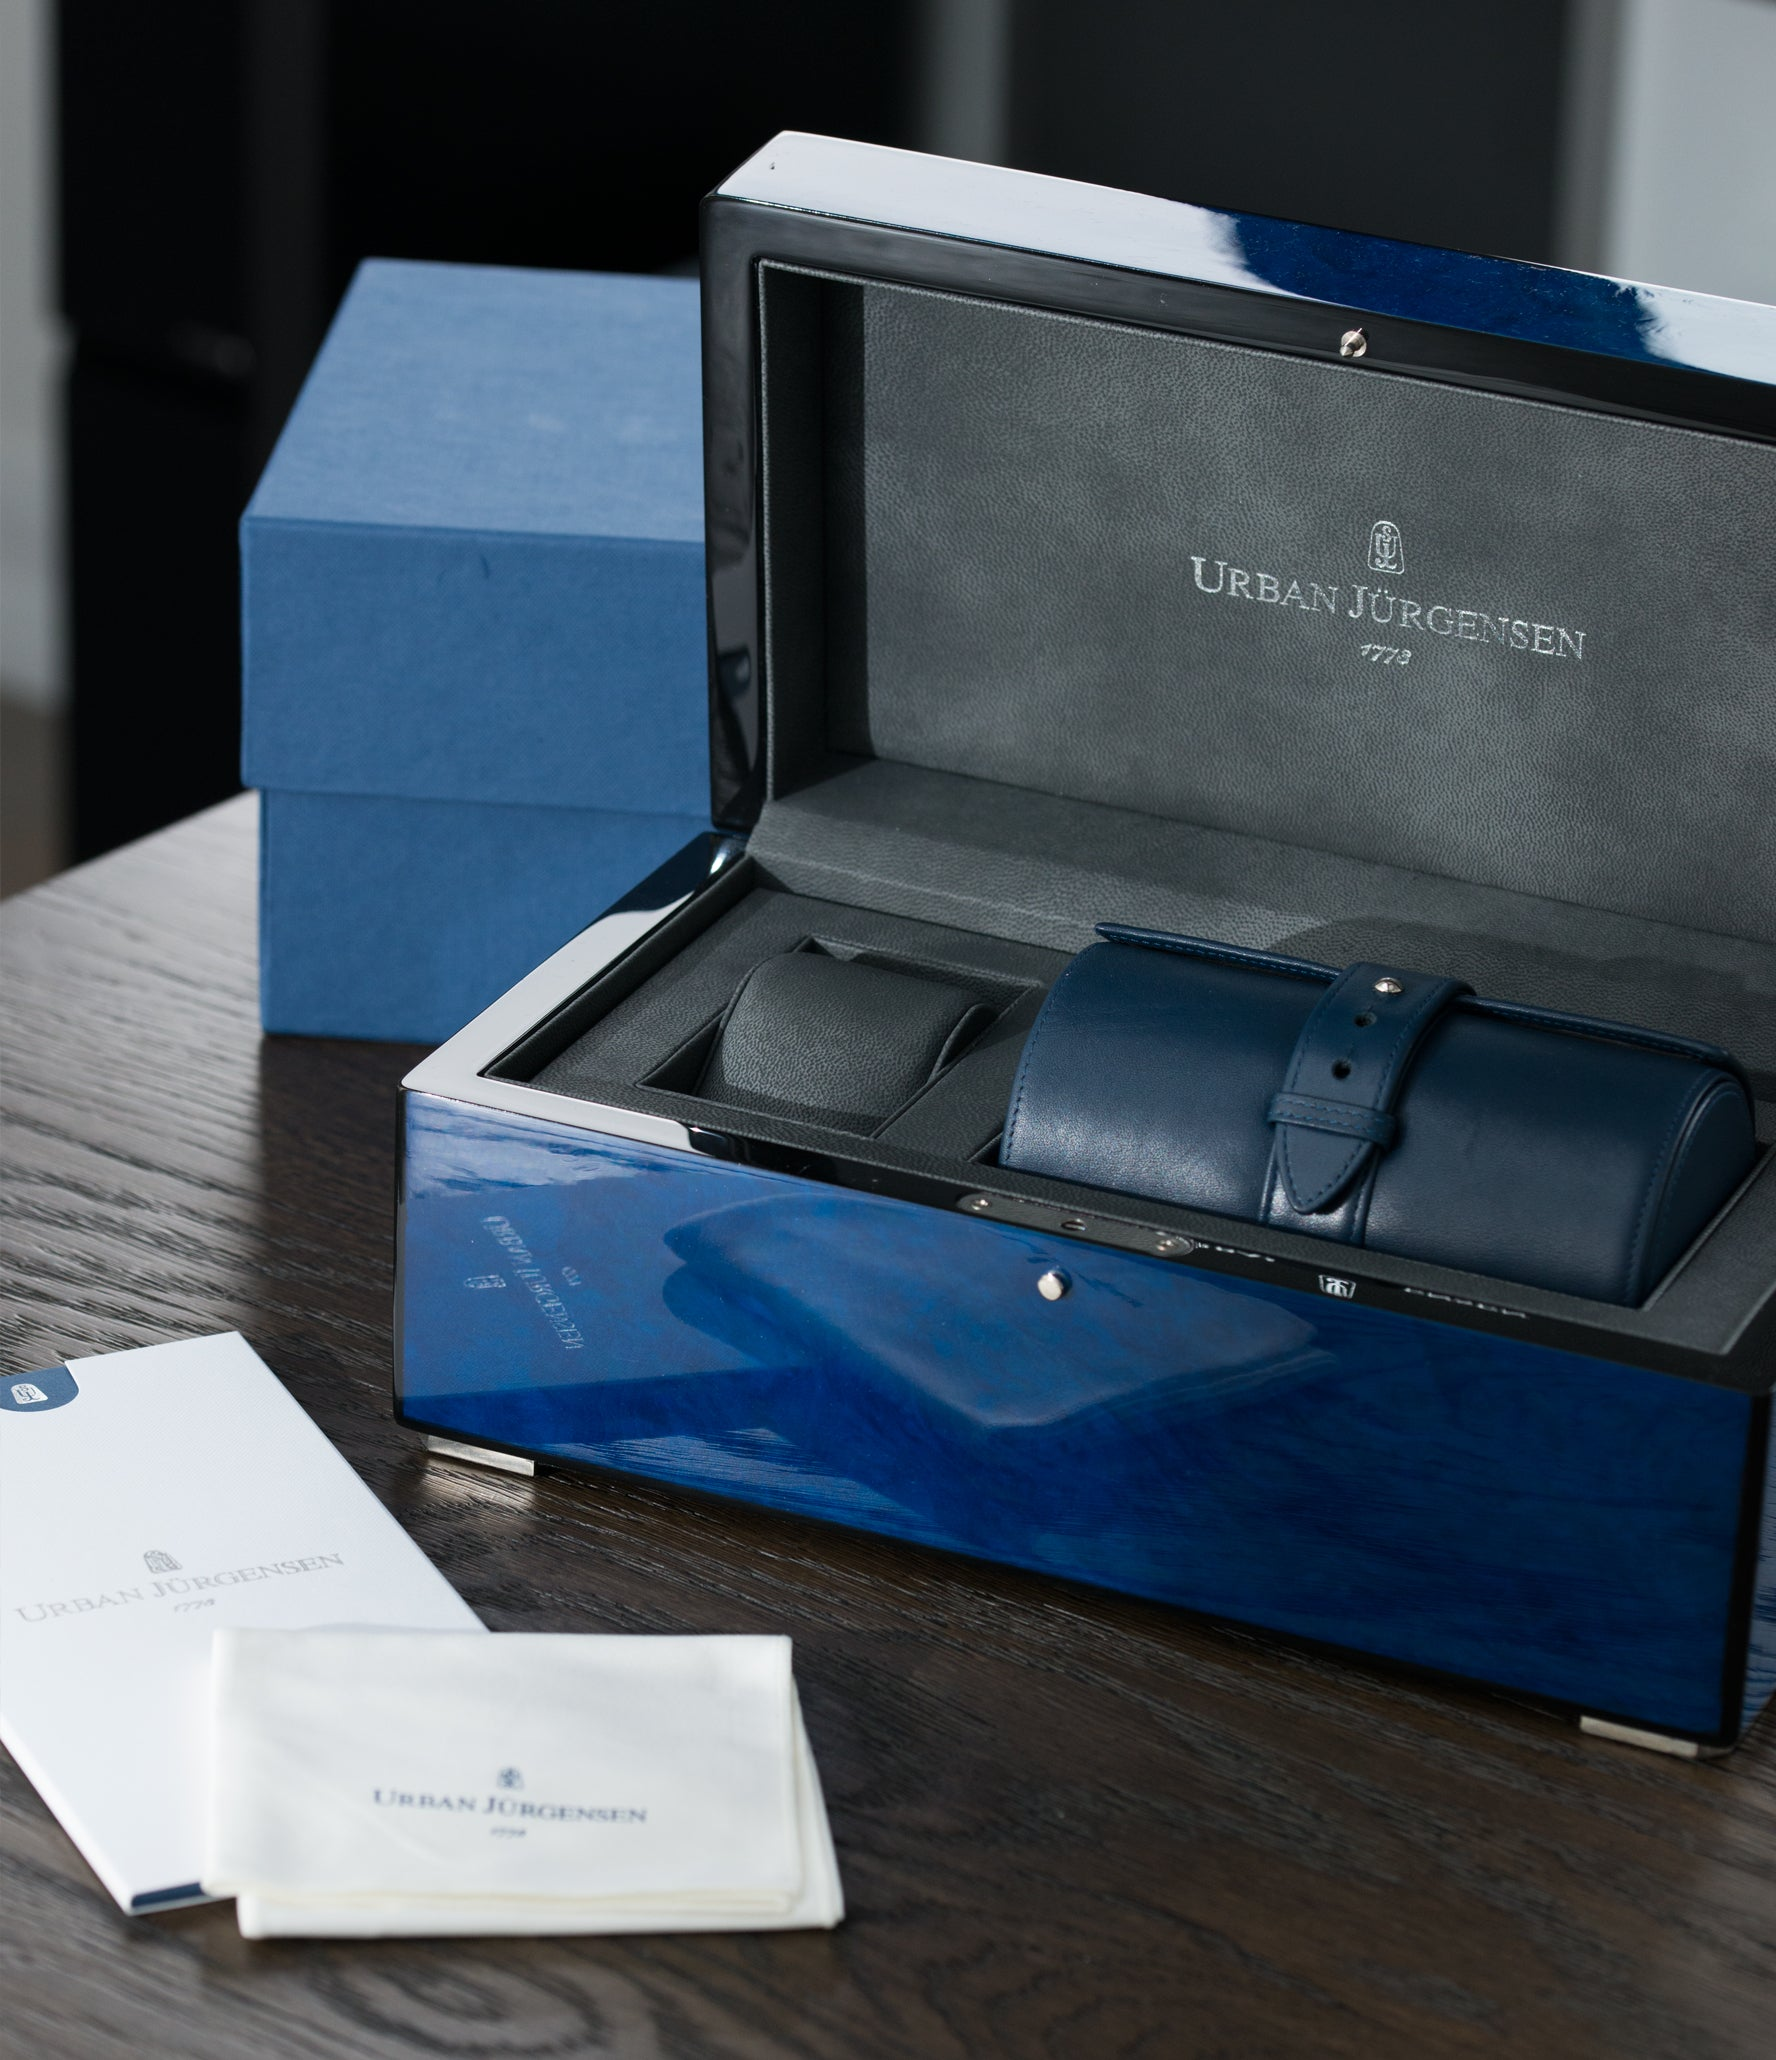 buy new Urban Jurgensen 1140 PT Blue dial watch online at A Collected Man London independent watchmaker specialist authorised retailer in the UK